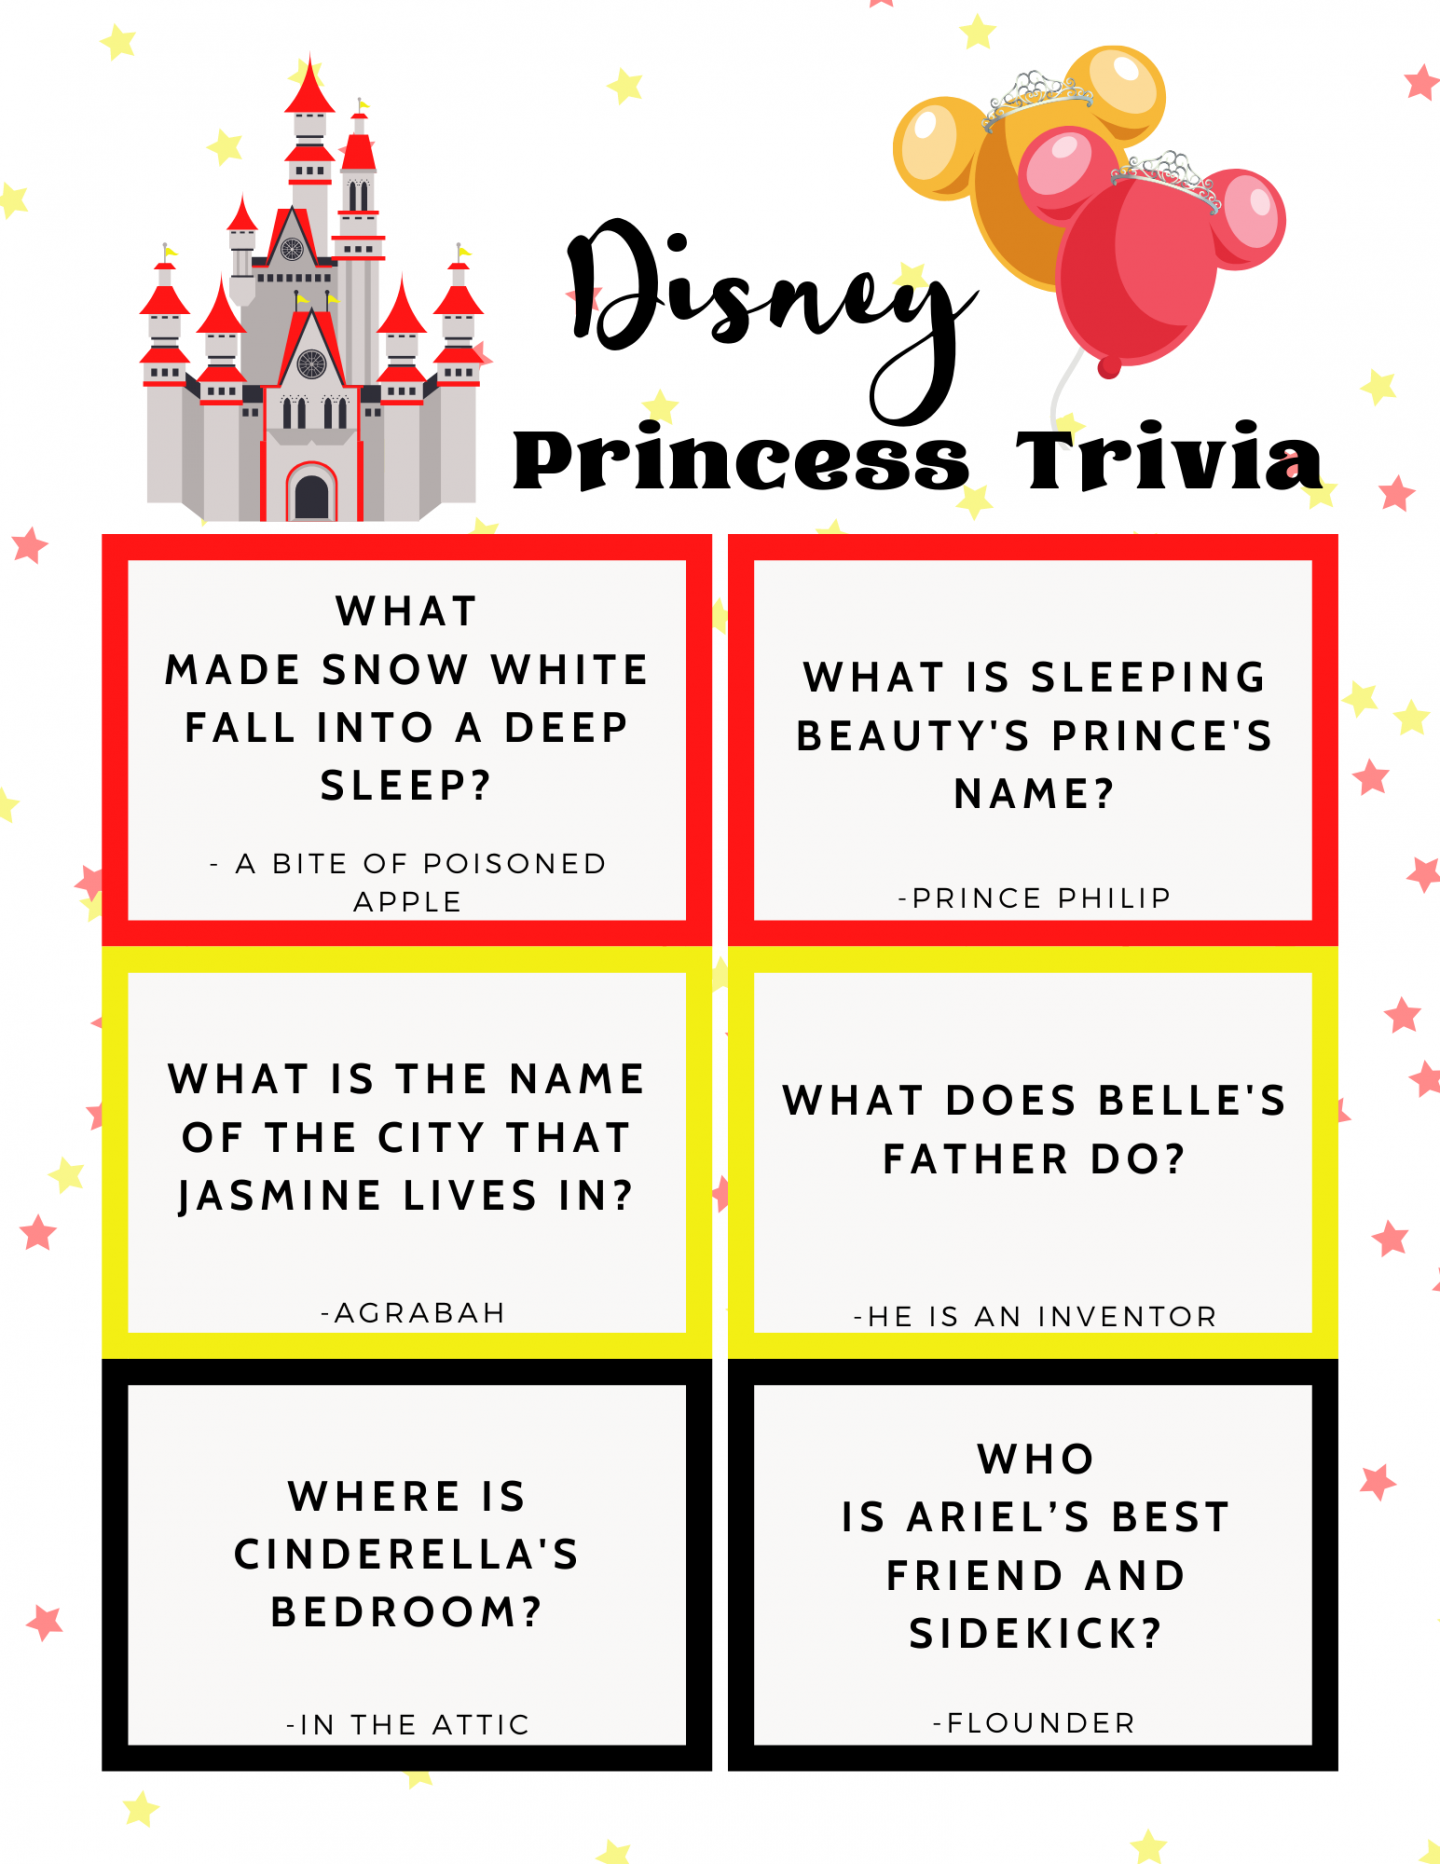 Disney Princess Trivia Questions And Answers Printable